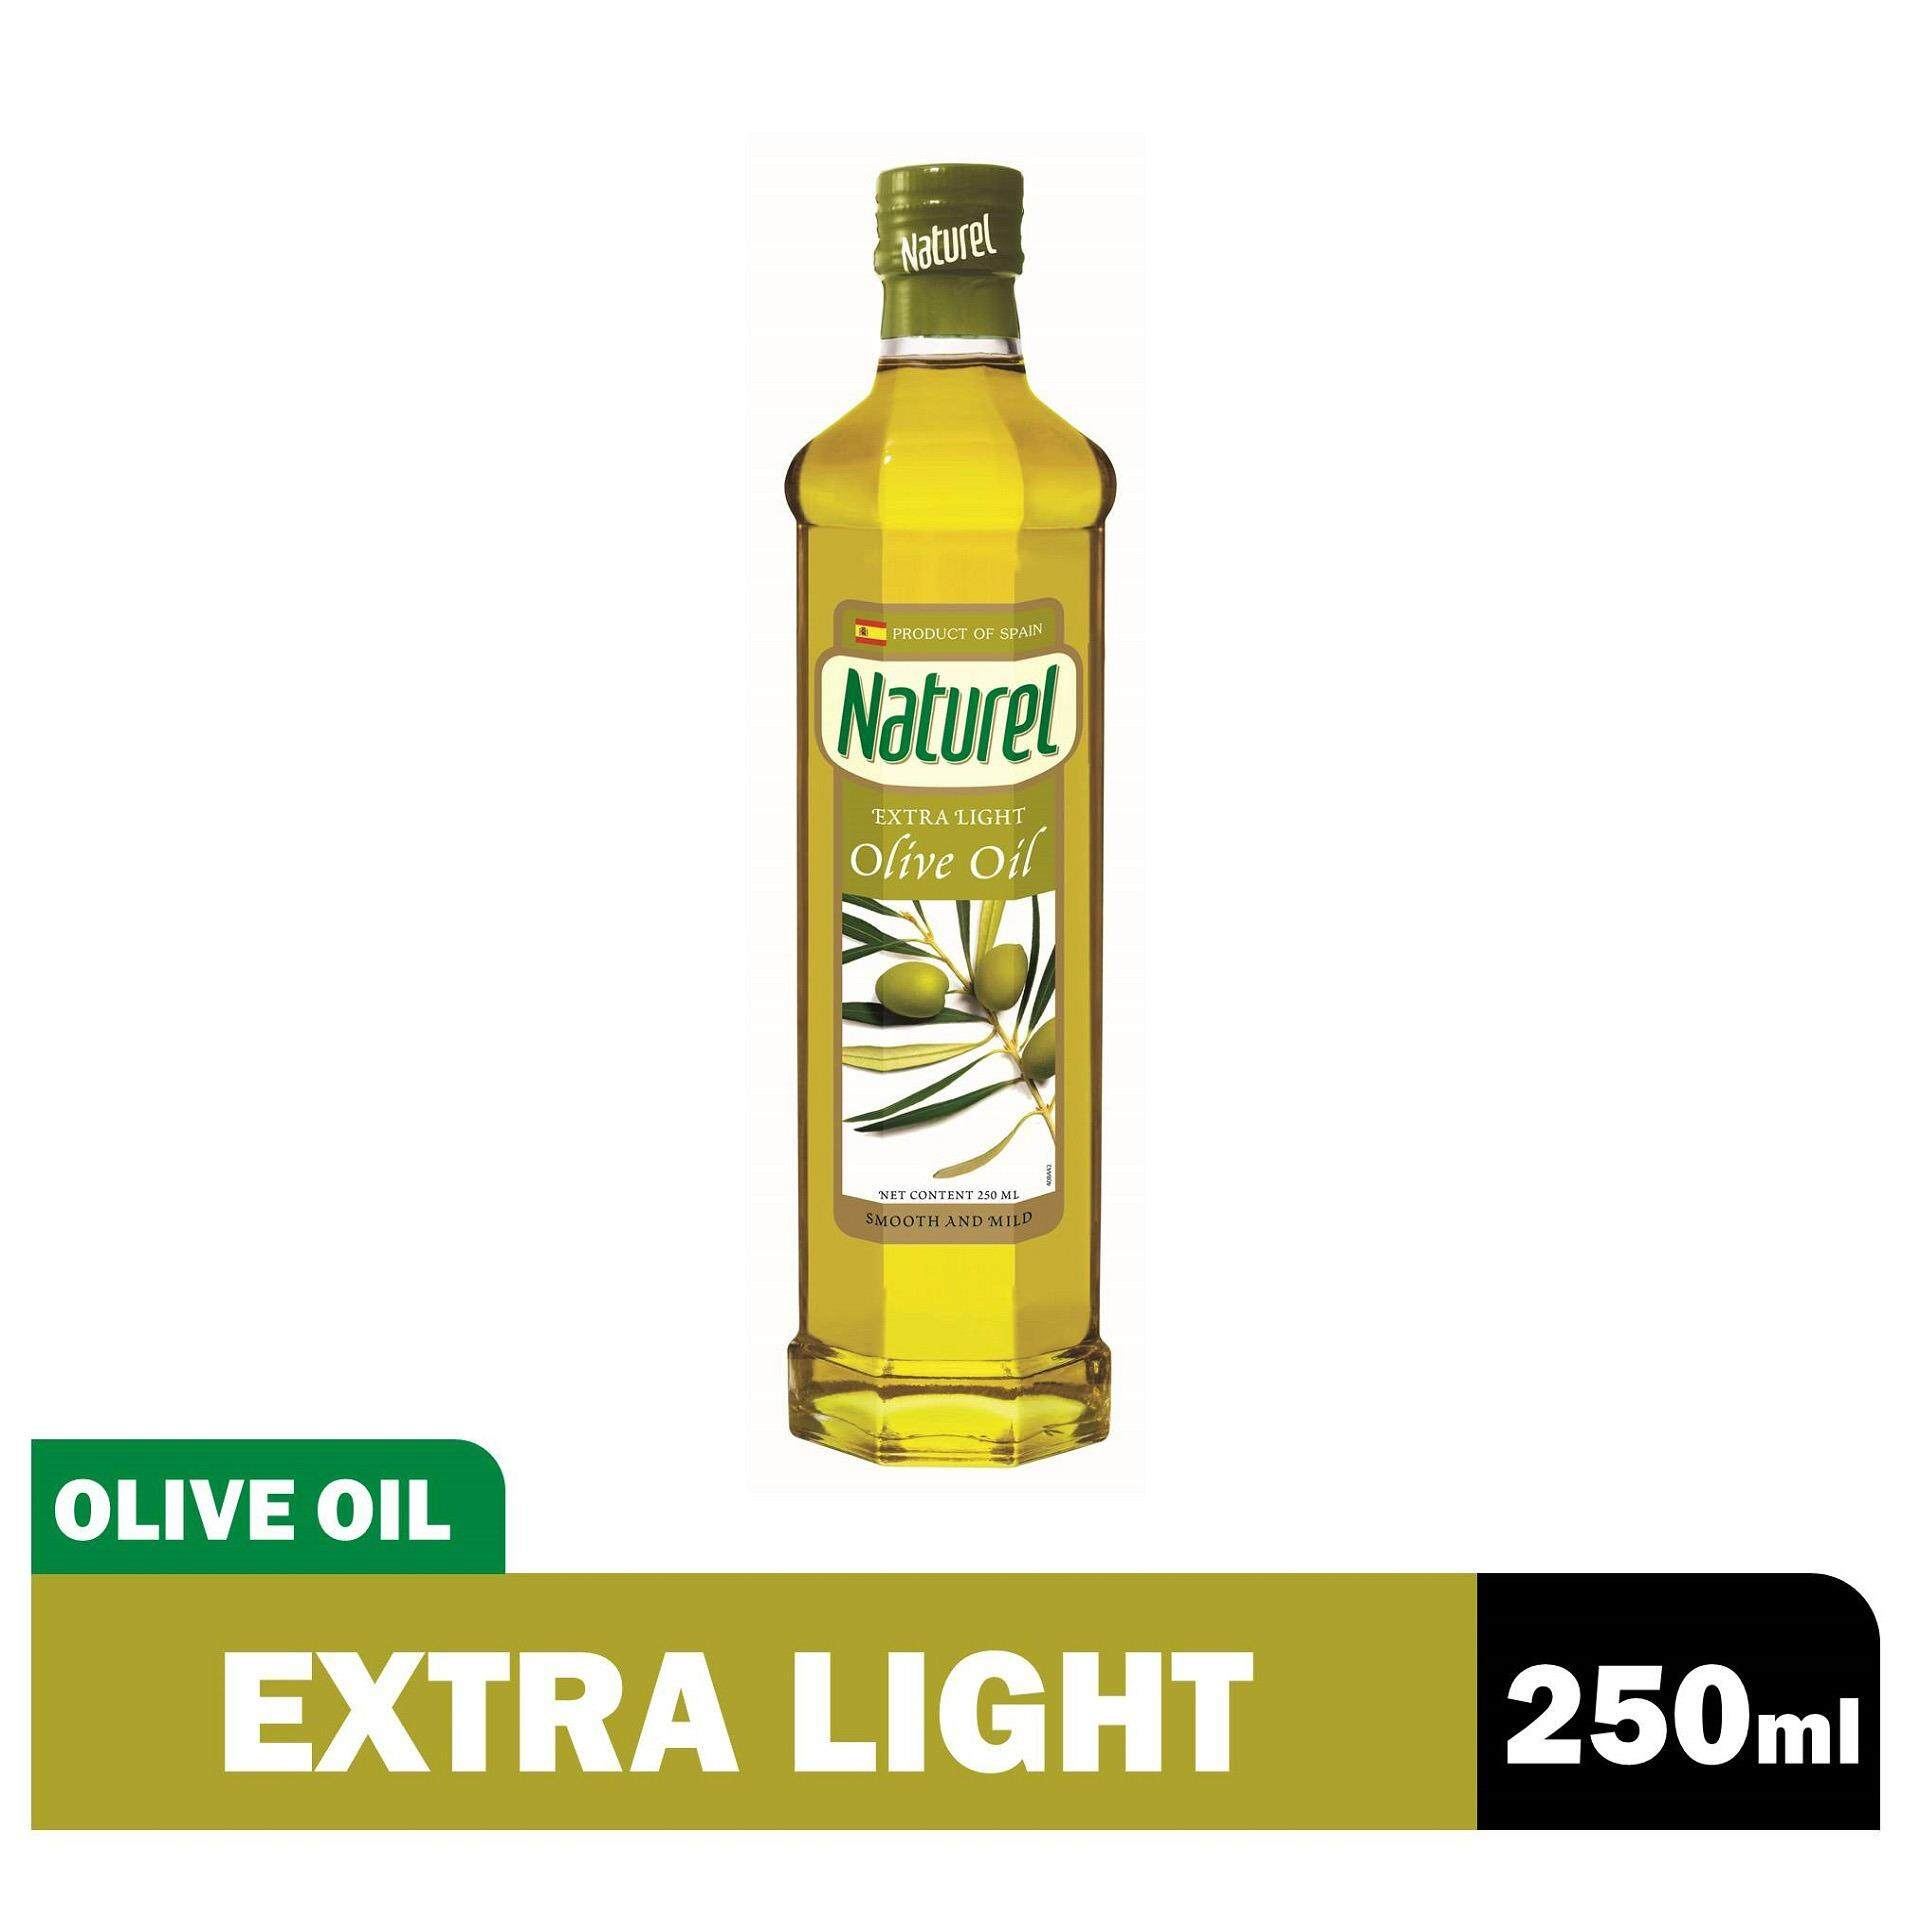 Naturel Extra Light Olive Oil 250ml